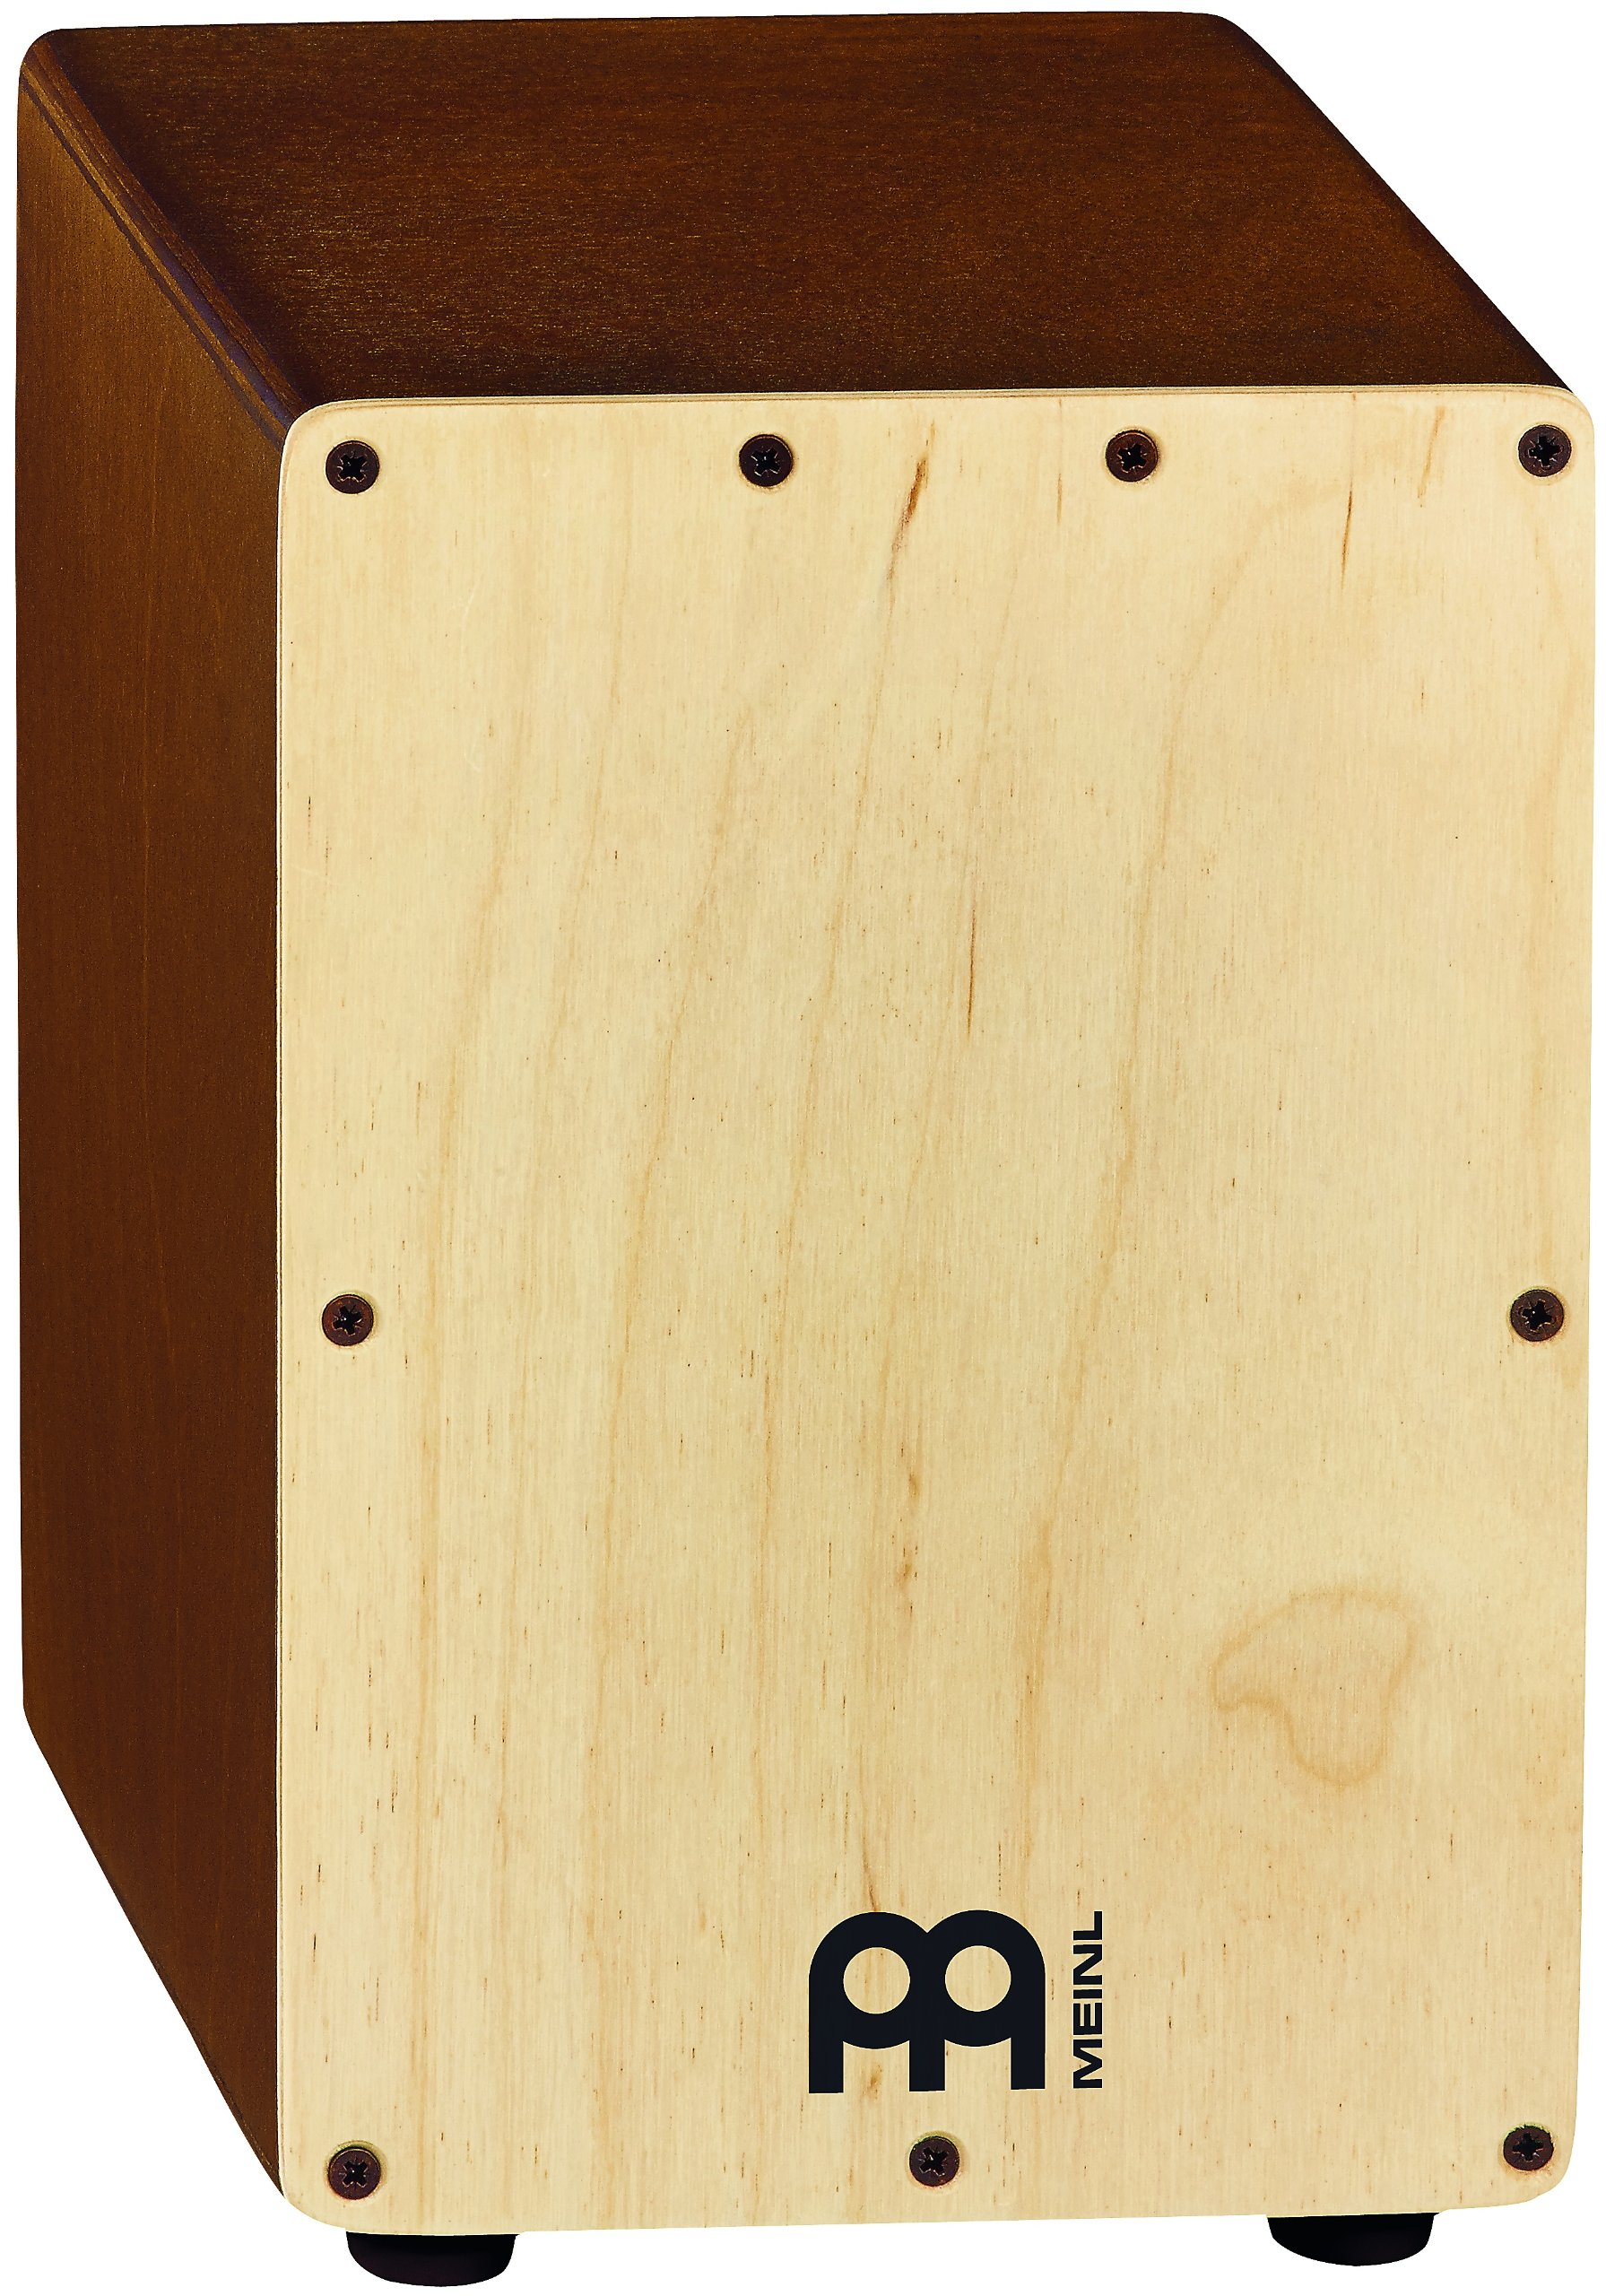 Meinl Percussion Baltic Birch Wood Miniature Snare Cajon, 2-YEAR WARRANTY, Made In Europe (SCAJ1LB-NT)